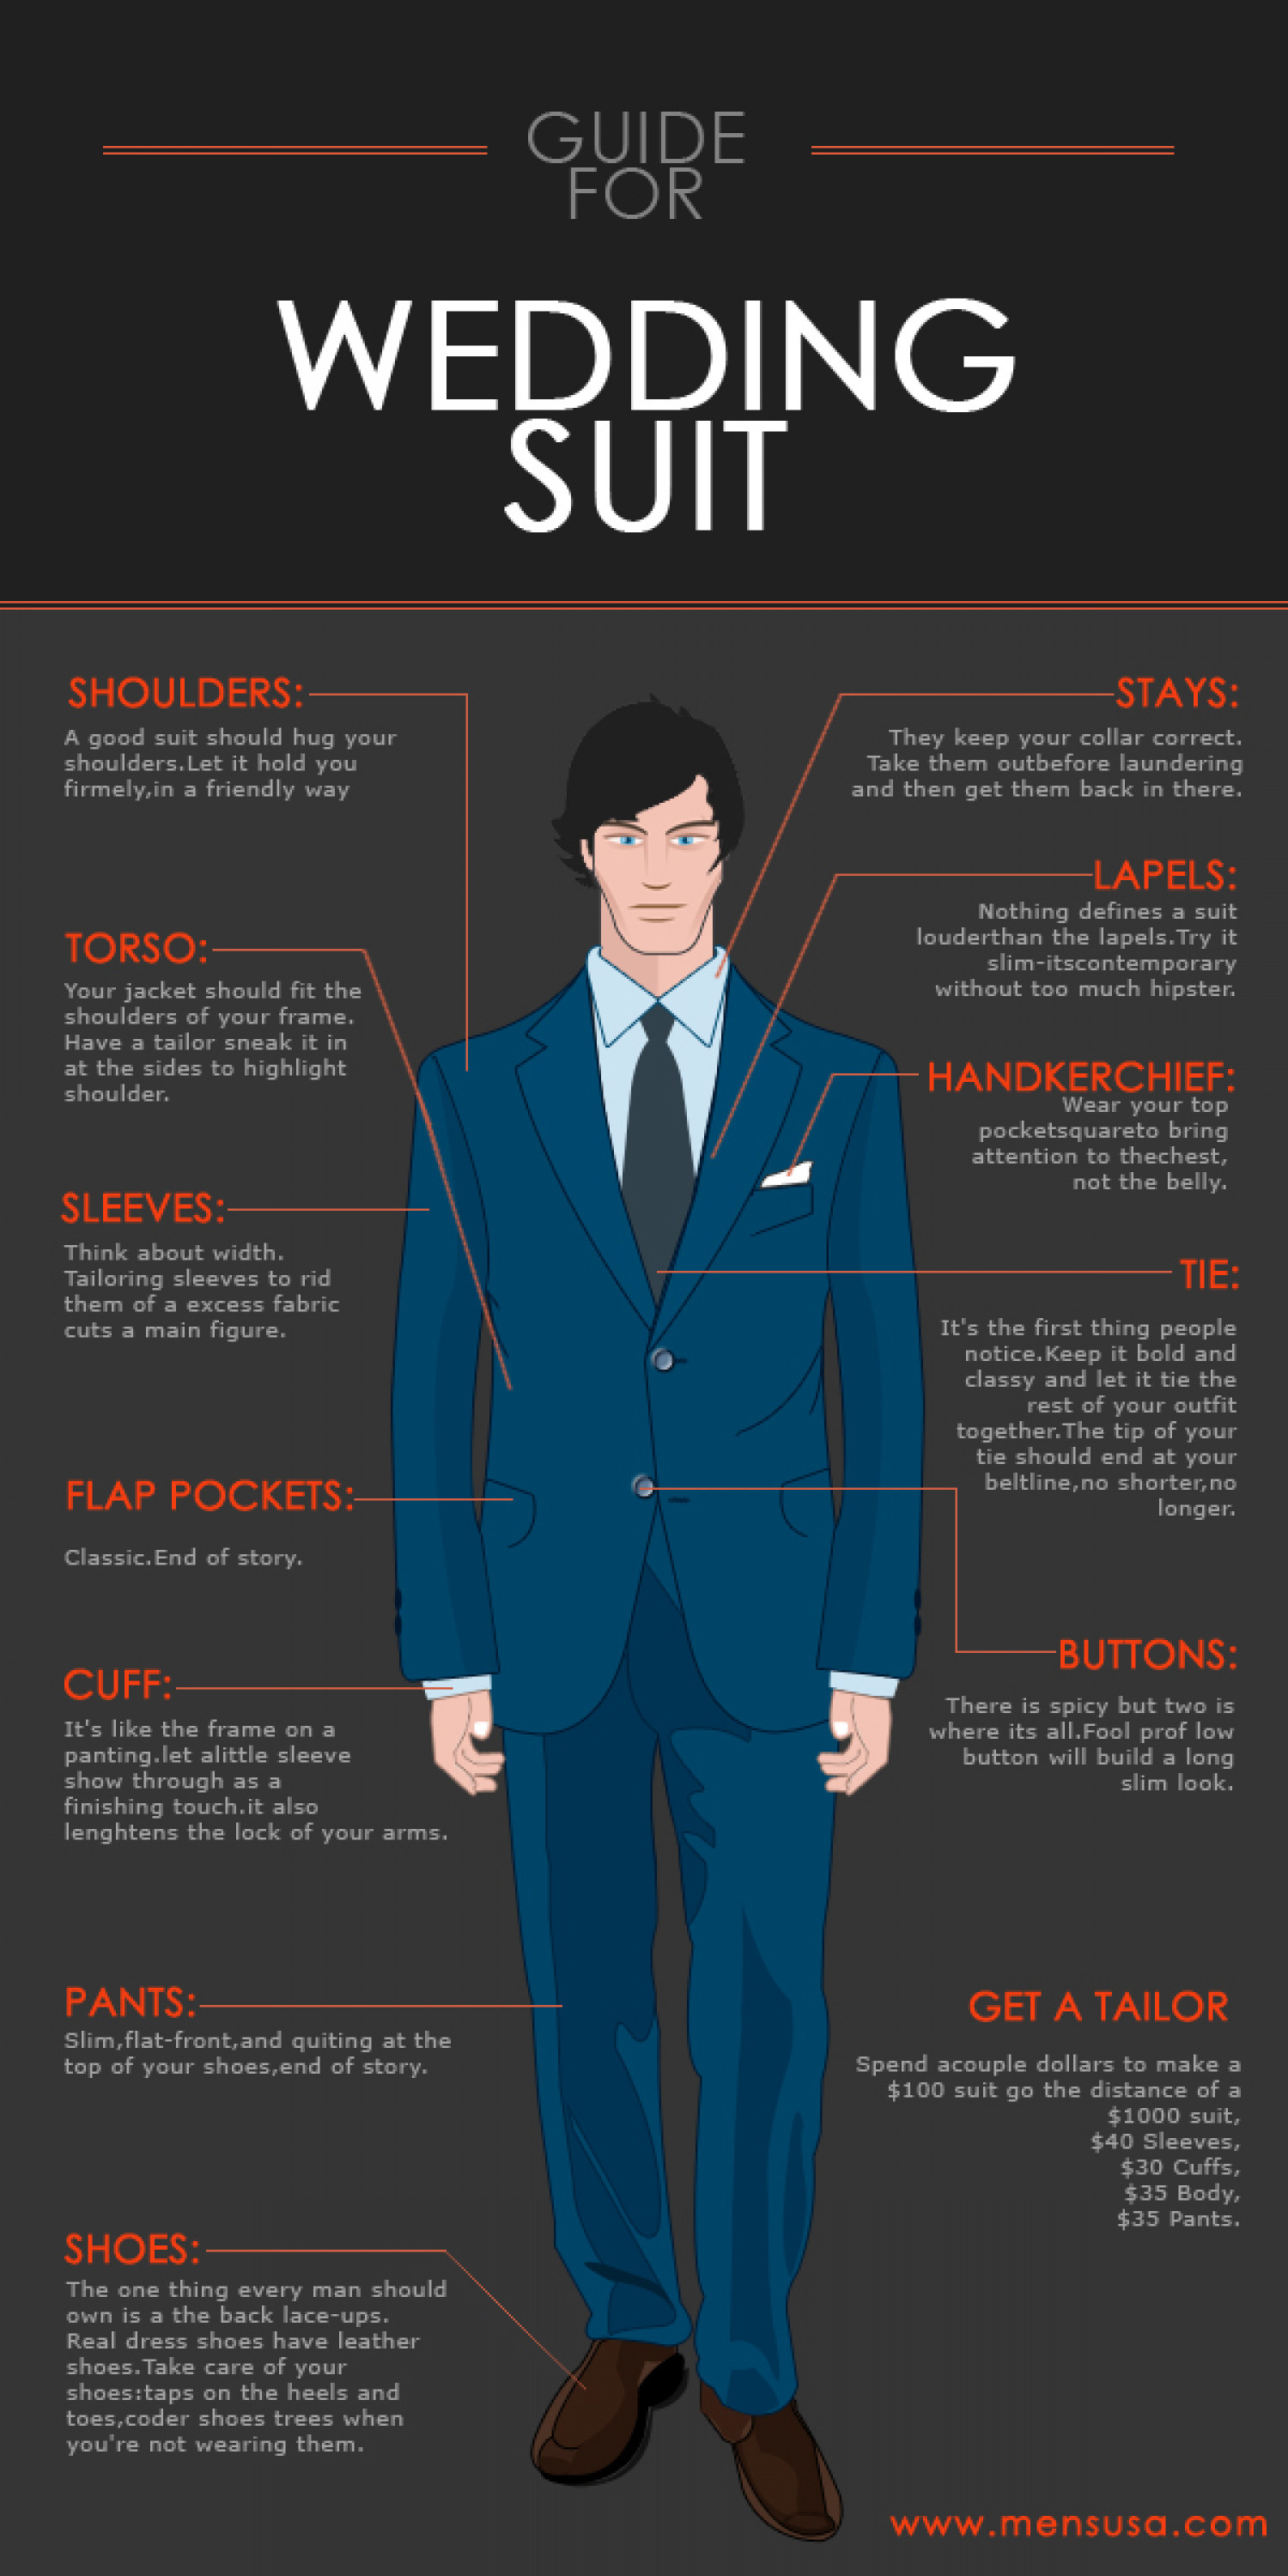 Guide for wedding suit Infographic